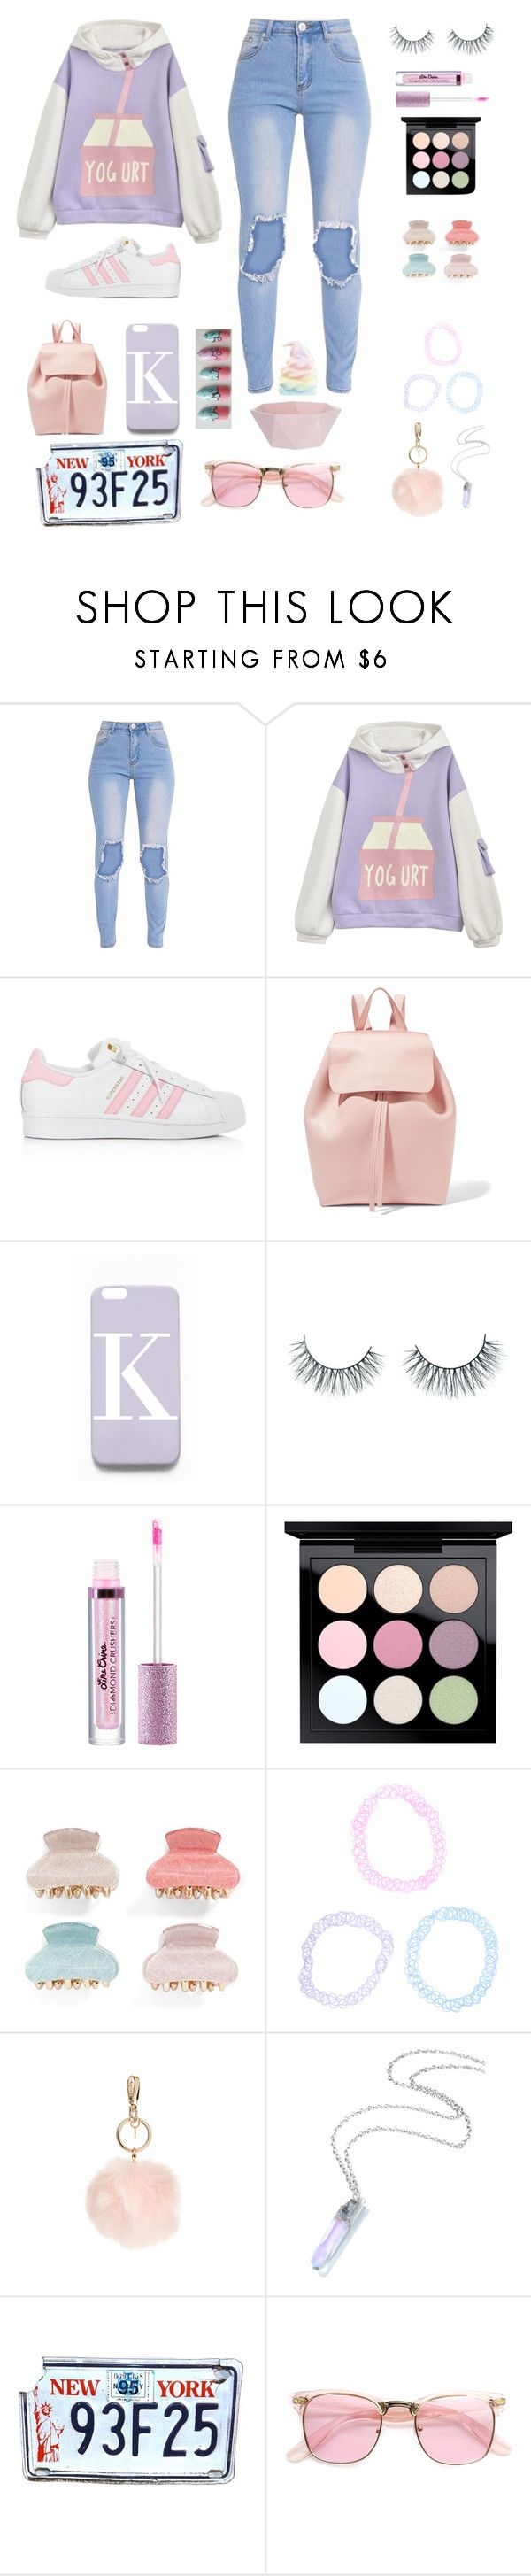 """Pastel Life"" by lakisha-ii ❤ liked on Polyvore featuring adidas, Mansur Gavriel, Rianna Phillips, Unicorn Lashes, MAC Cosmetics, Tasha, GUESS and ZeroUV"